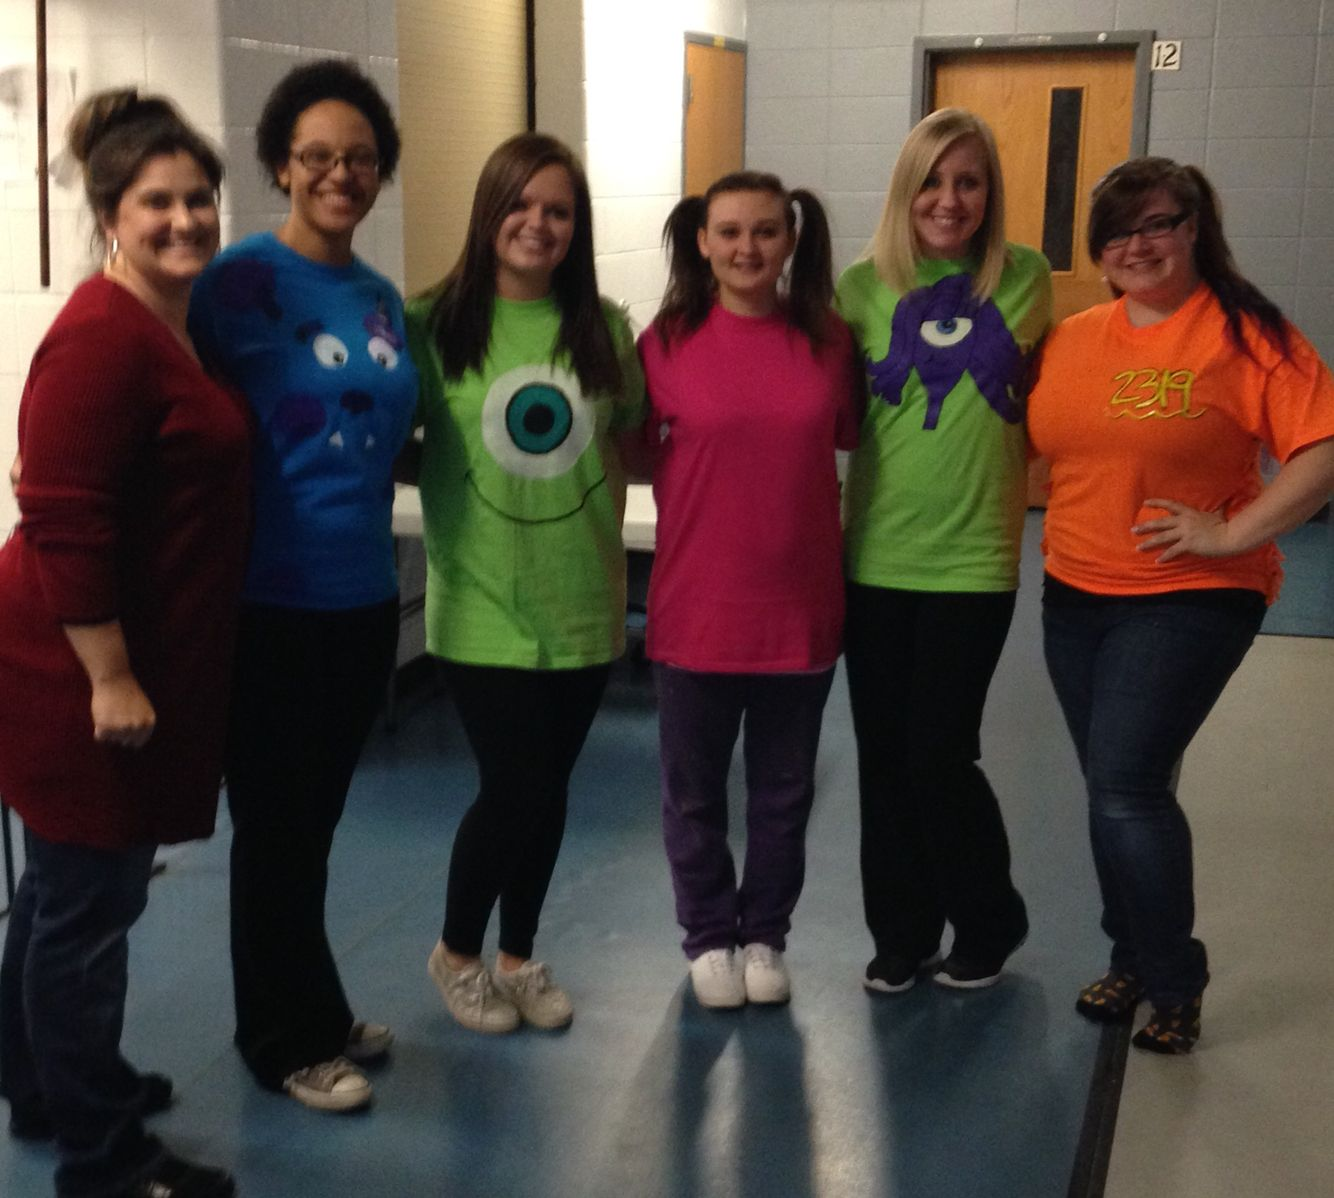 DIY Halloween Monsters Inc  costumes  #roz #sully #mikewazowski #boo